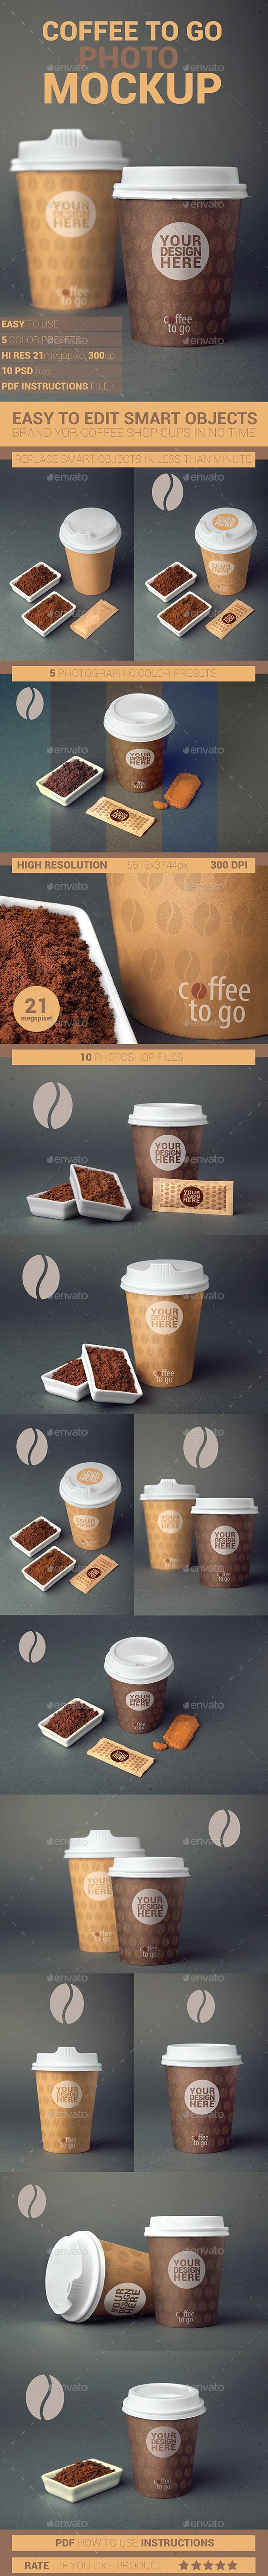 Coffee To Go Cup Branding Edition 1 Photo Mockup - Product Mock-Ups Graphics